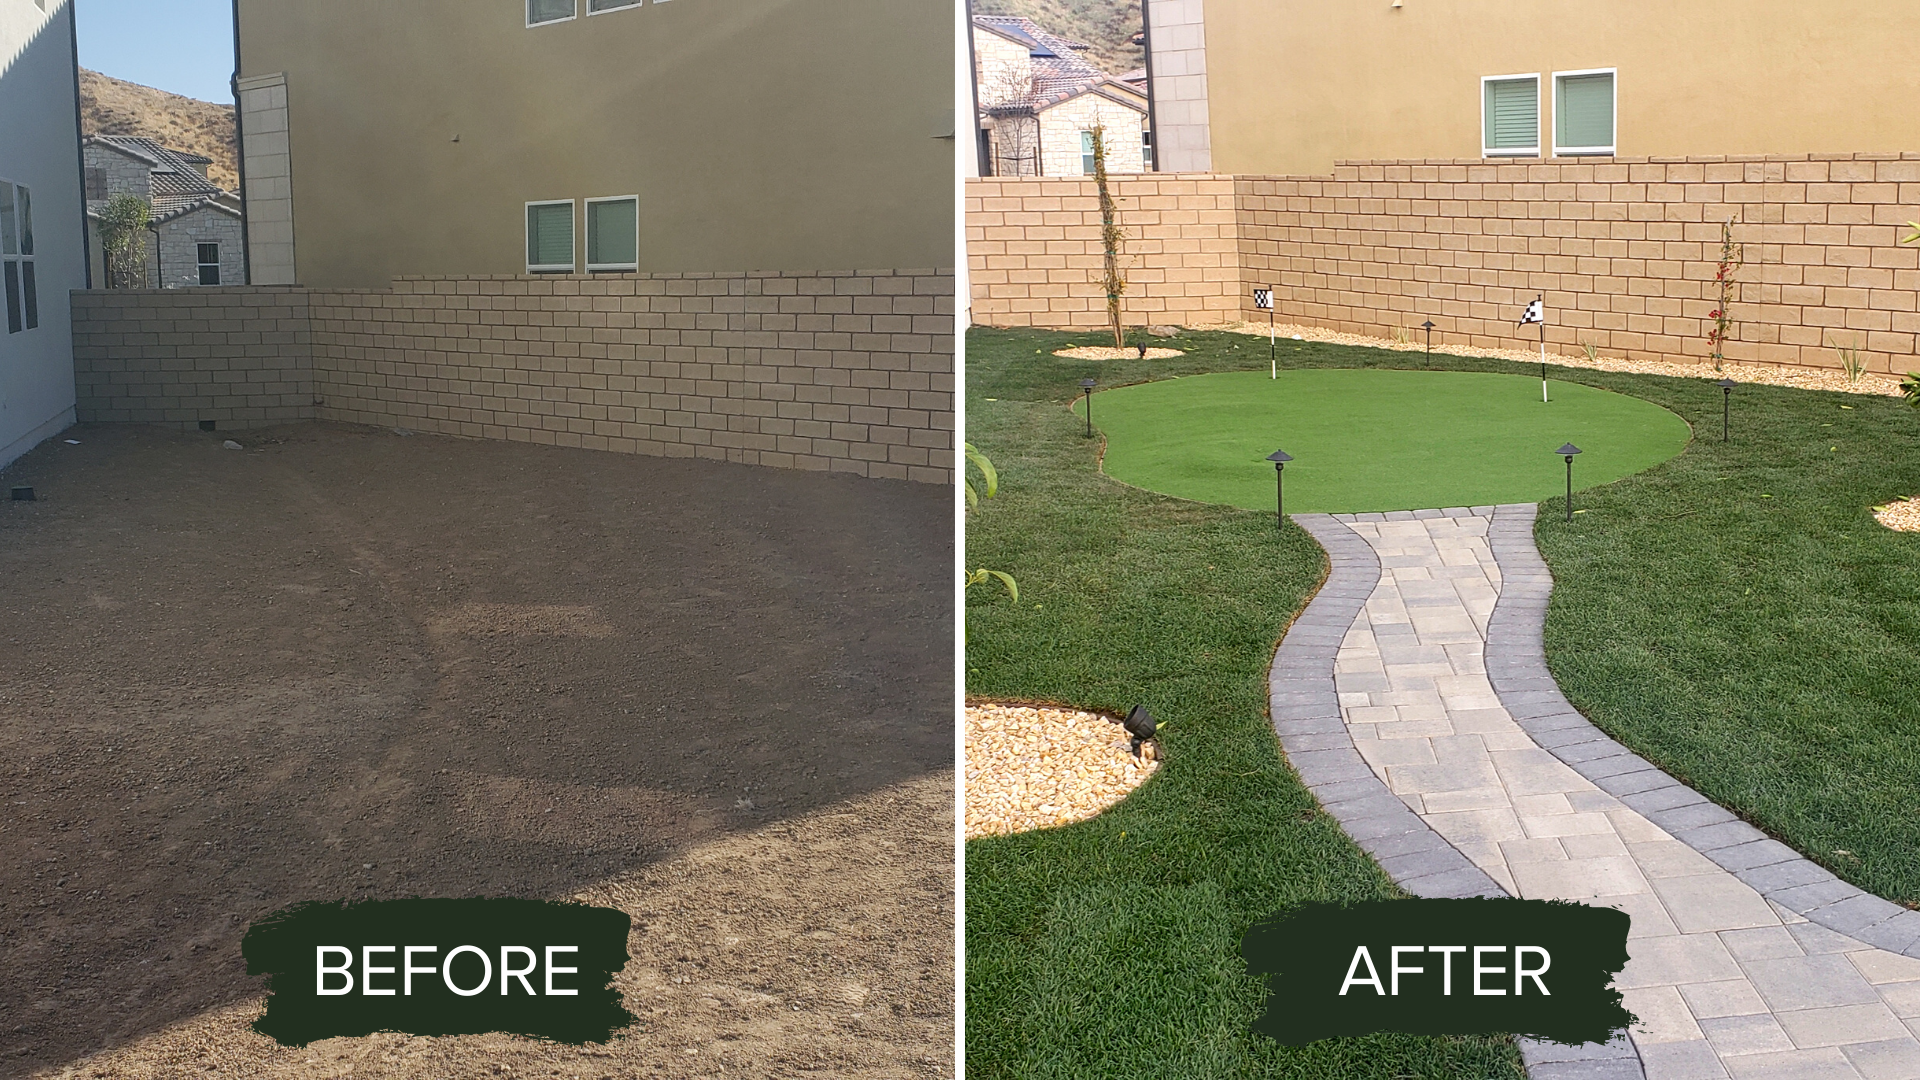 BEFORE AND AFTER BACKYARD RENOVATION